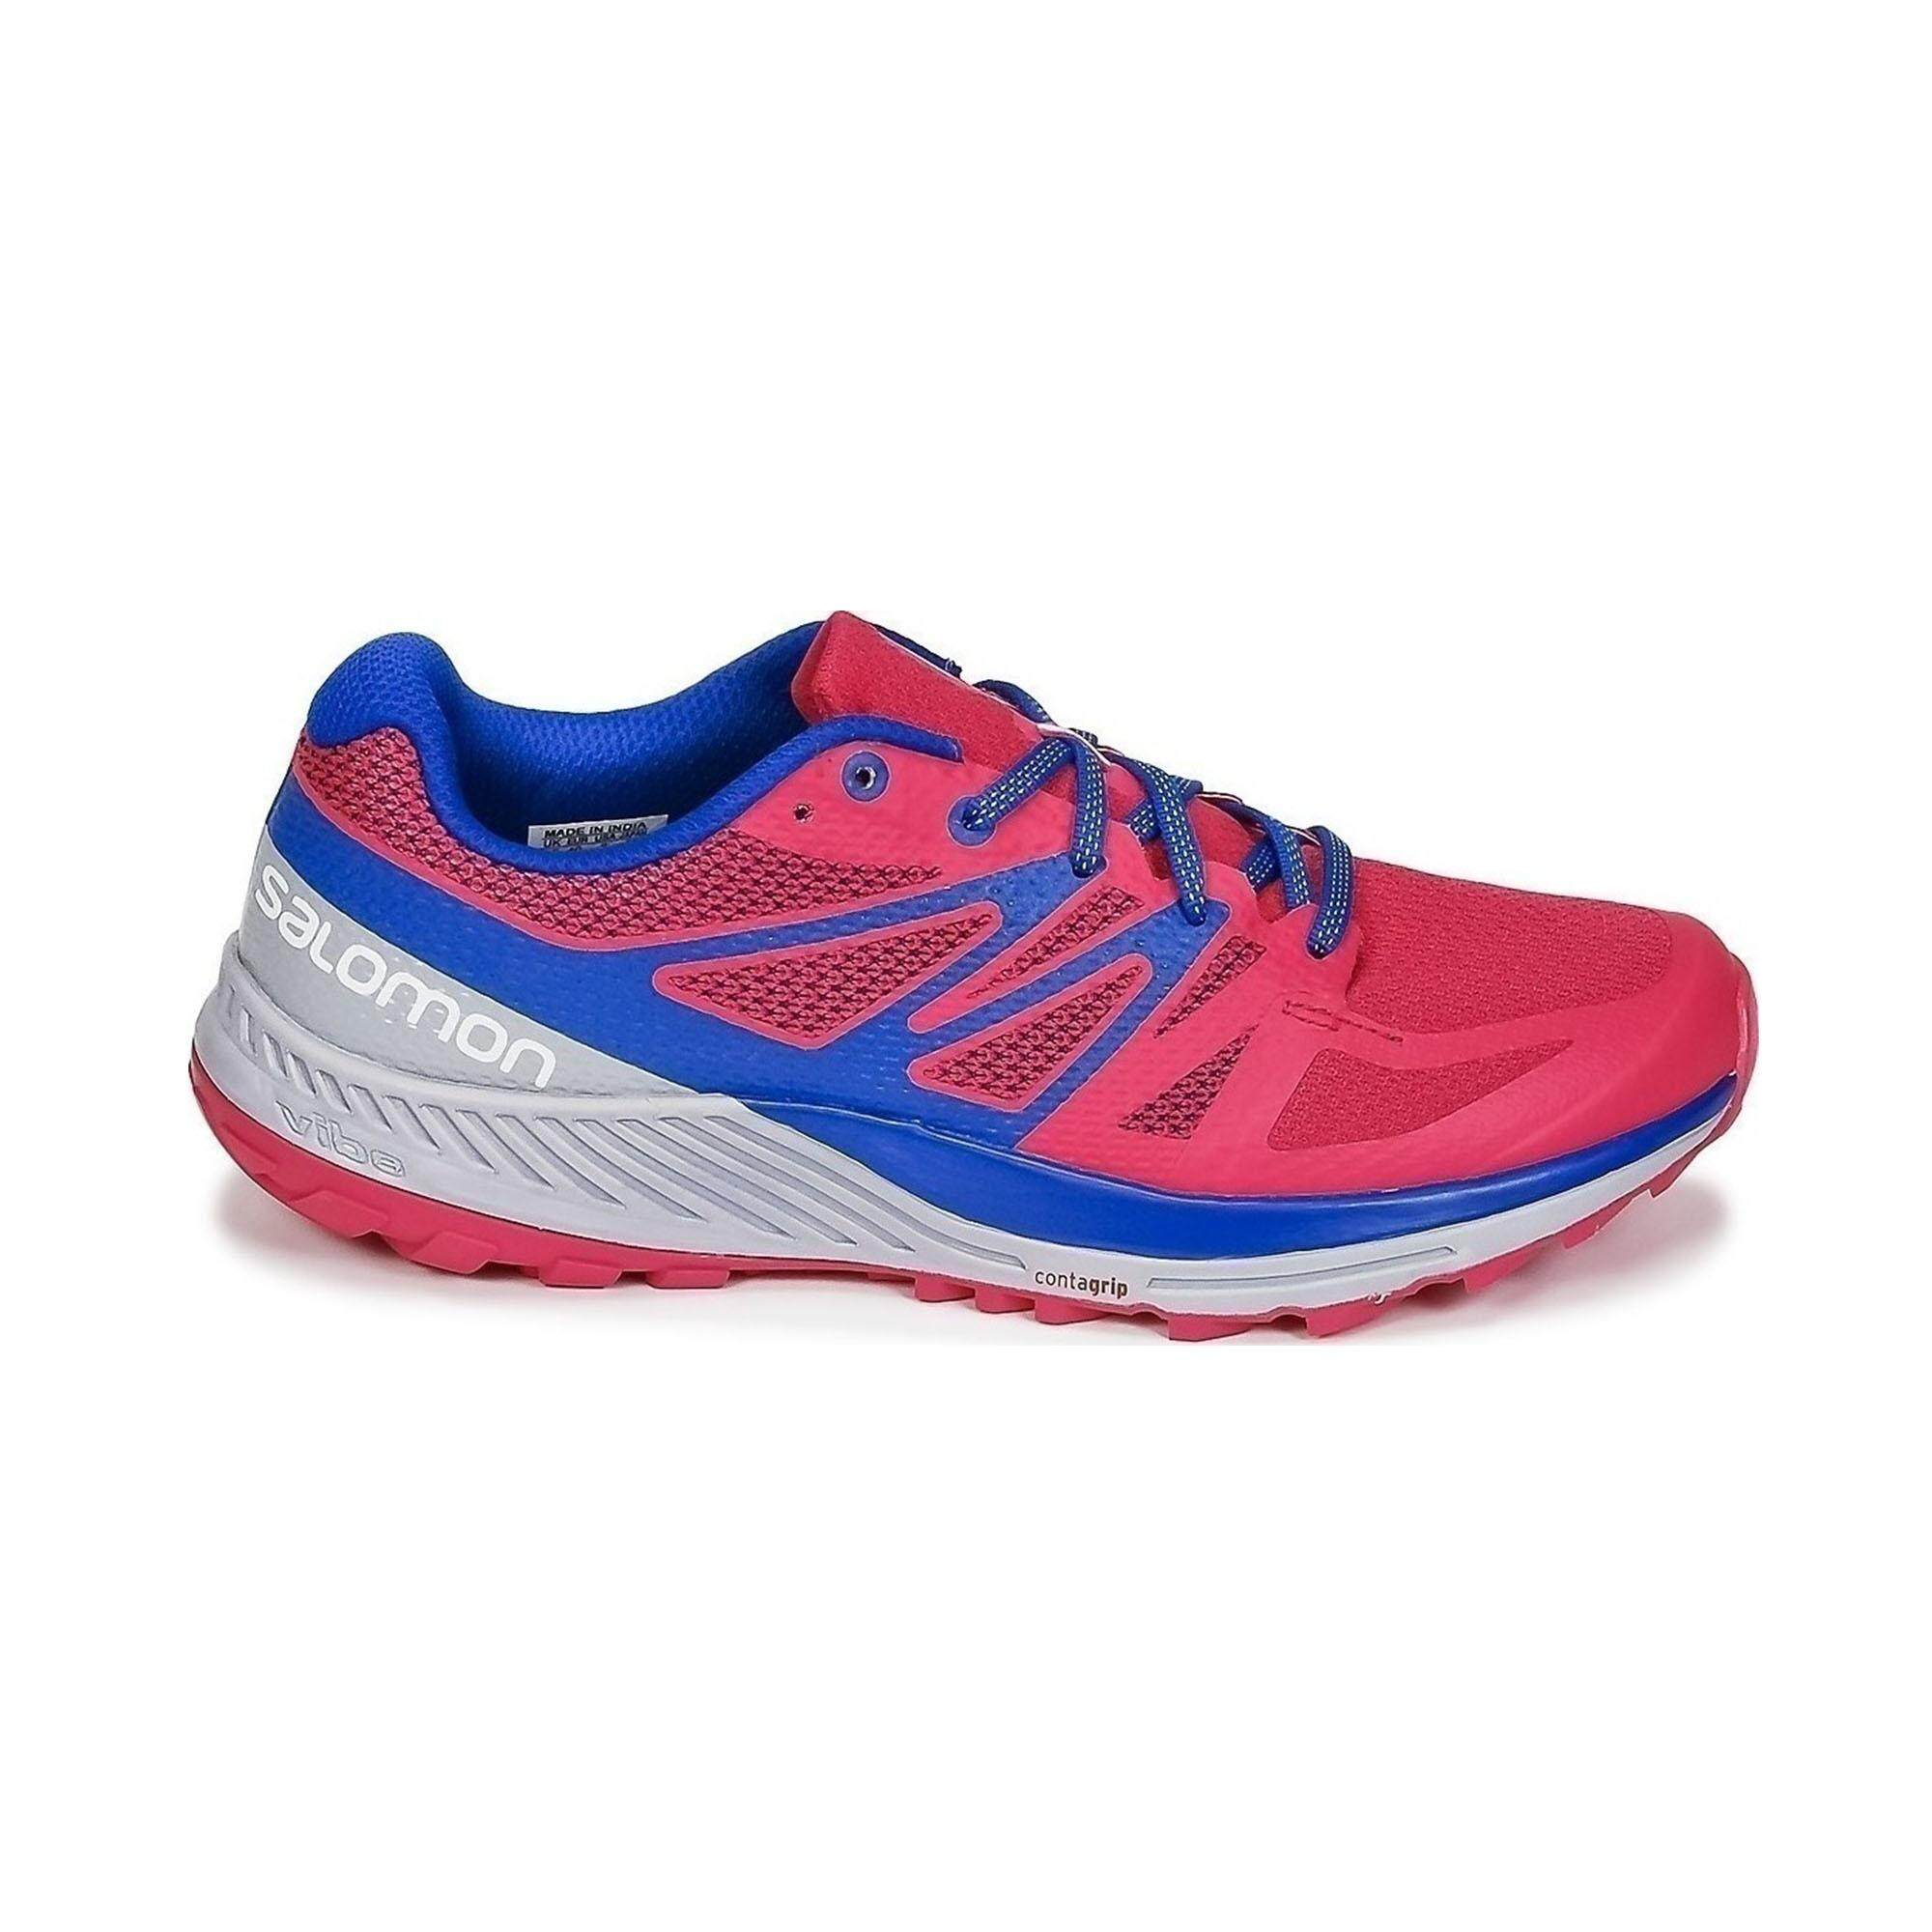 9fdcb8868809 Salomon Outdoor Products for the Best Prices in Malaysia